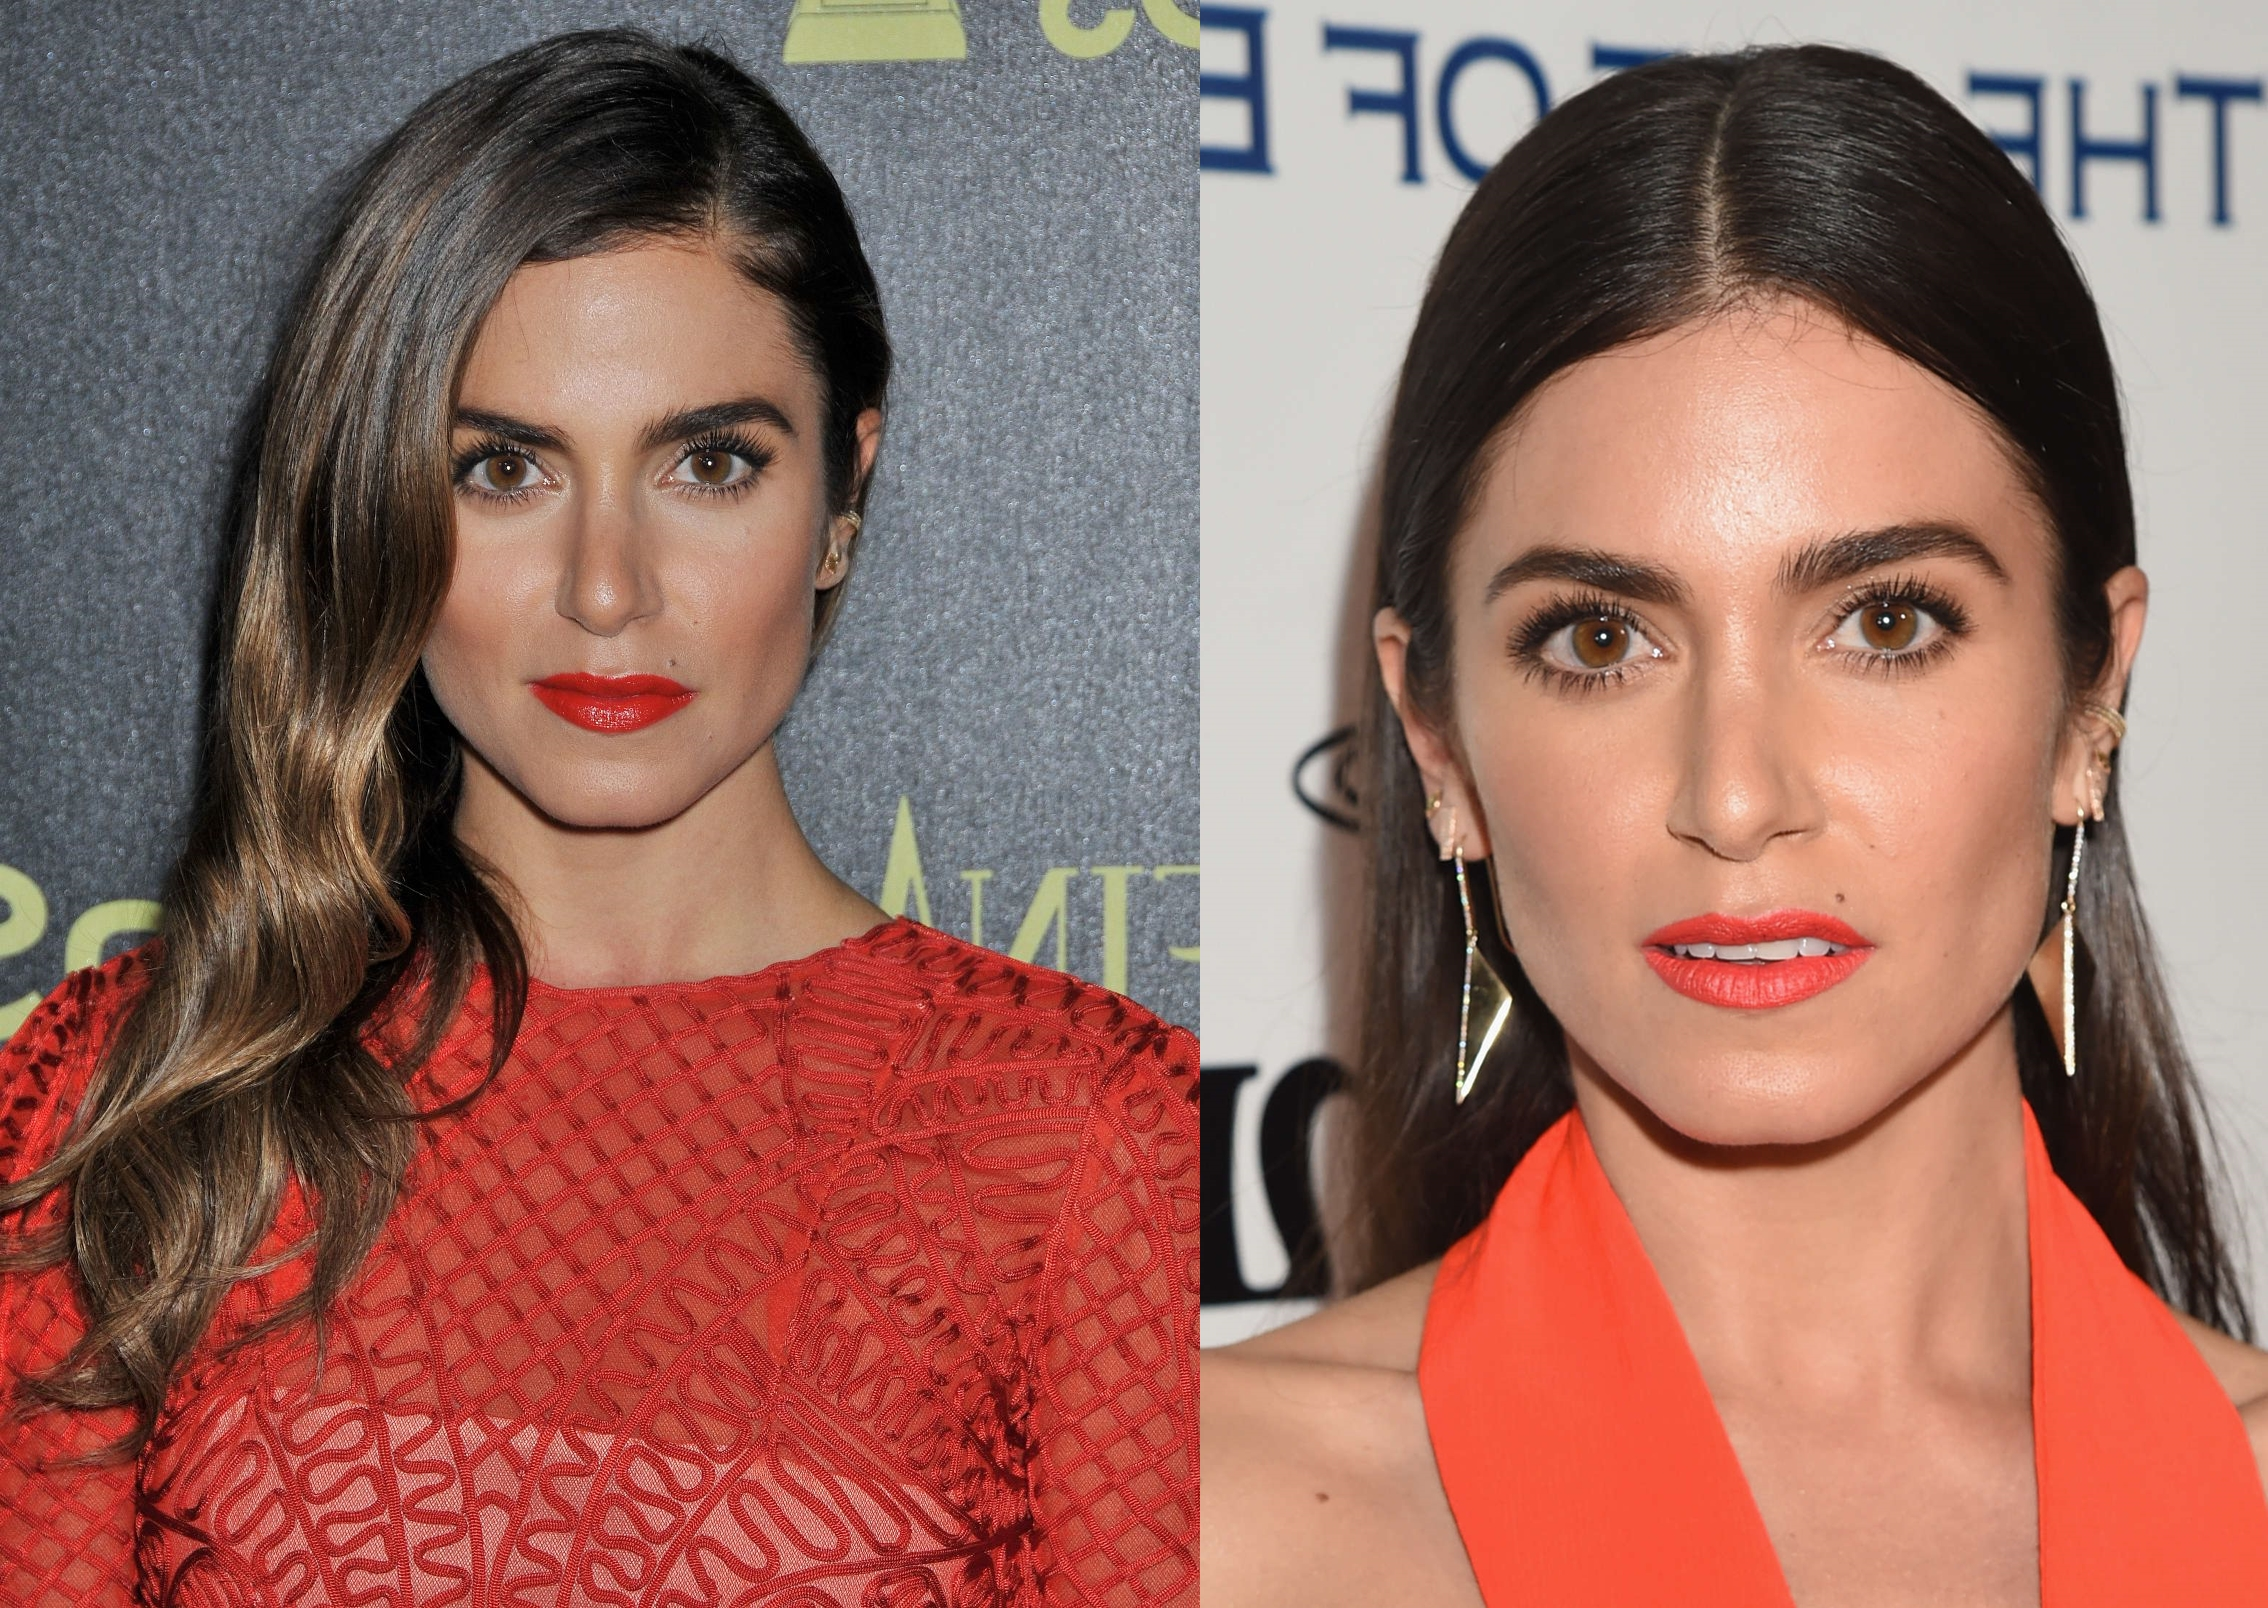 Nikki Reed Plastic Surgery Before And After Photos nose job